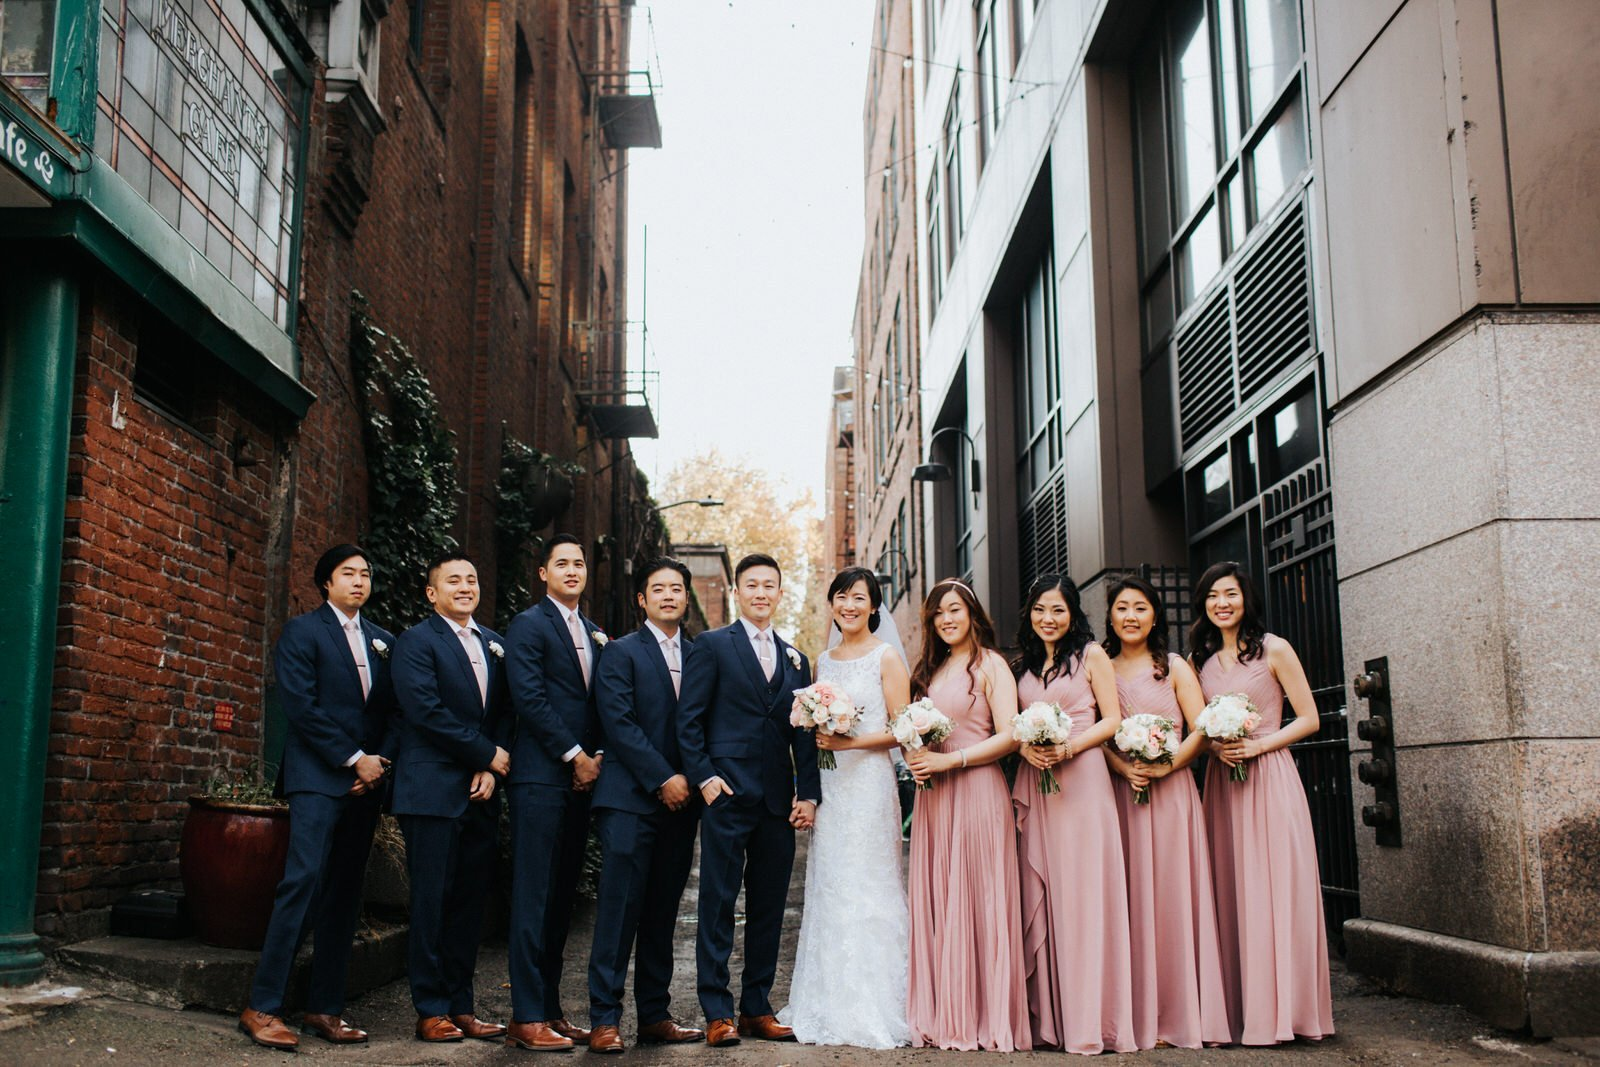 Wedding party poses in an alley at pioneer square